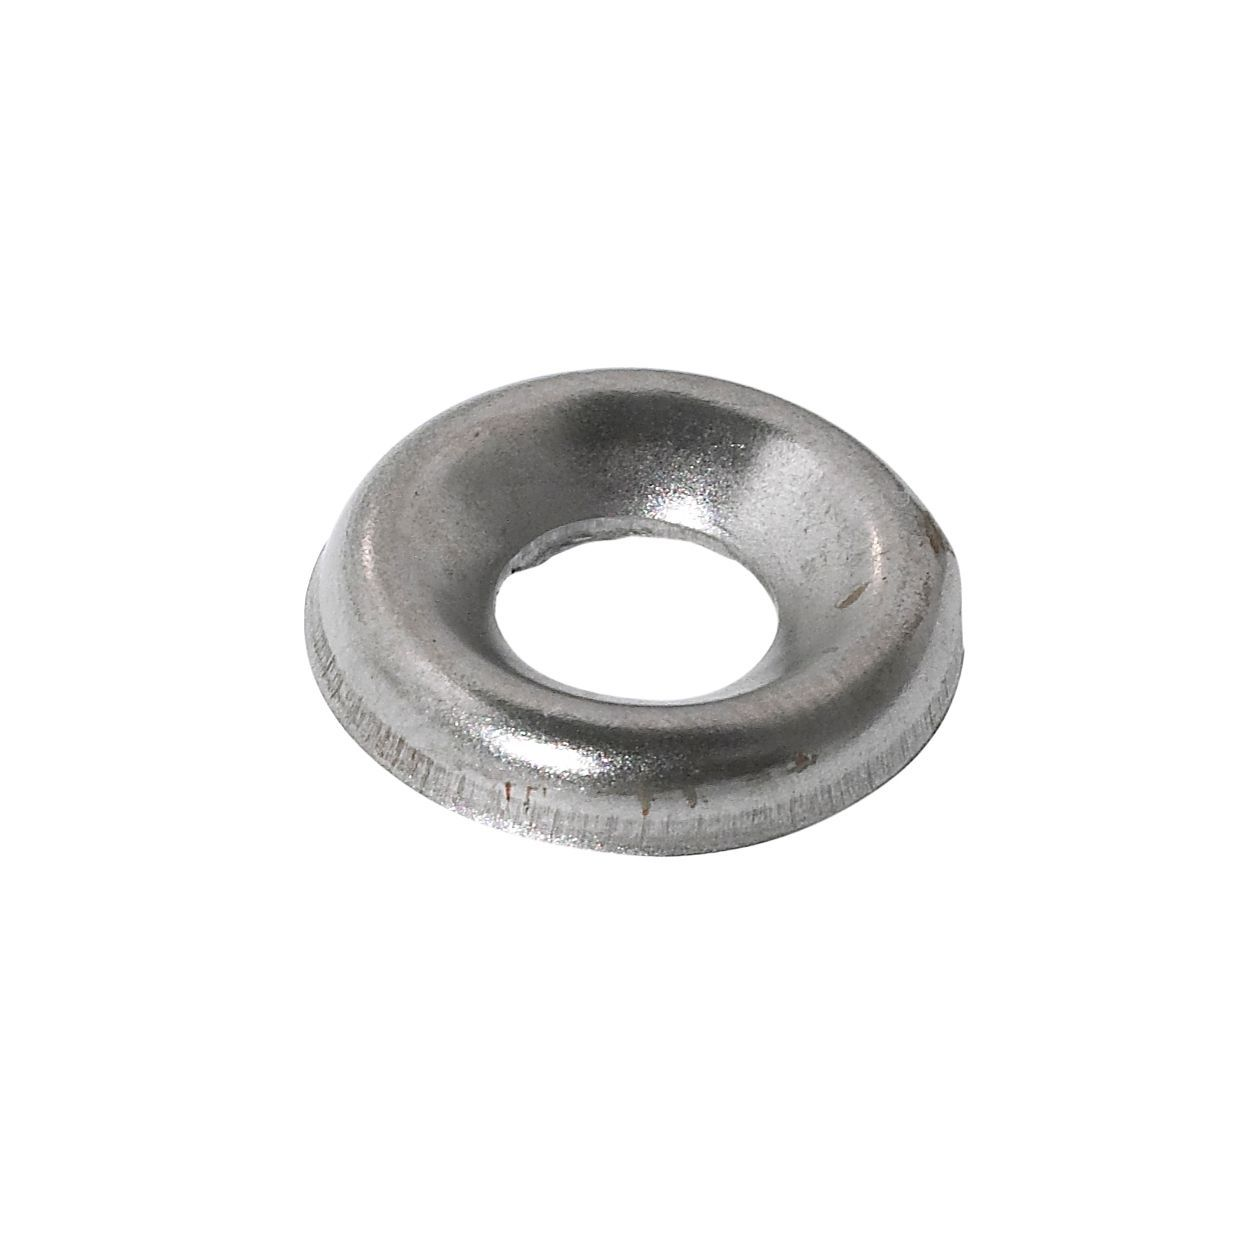 Avf M5 Stainless Steel Screw Cup Washer, Pack Of 25